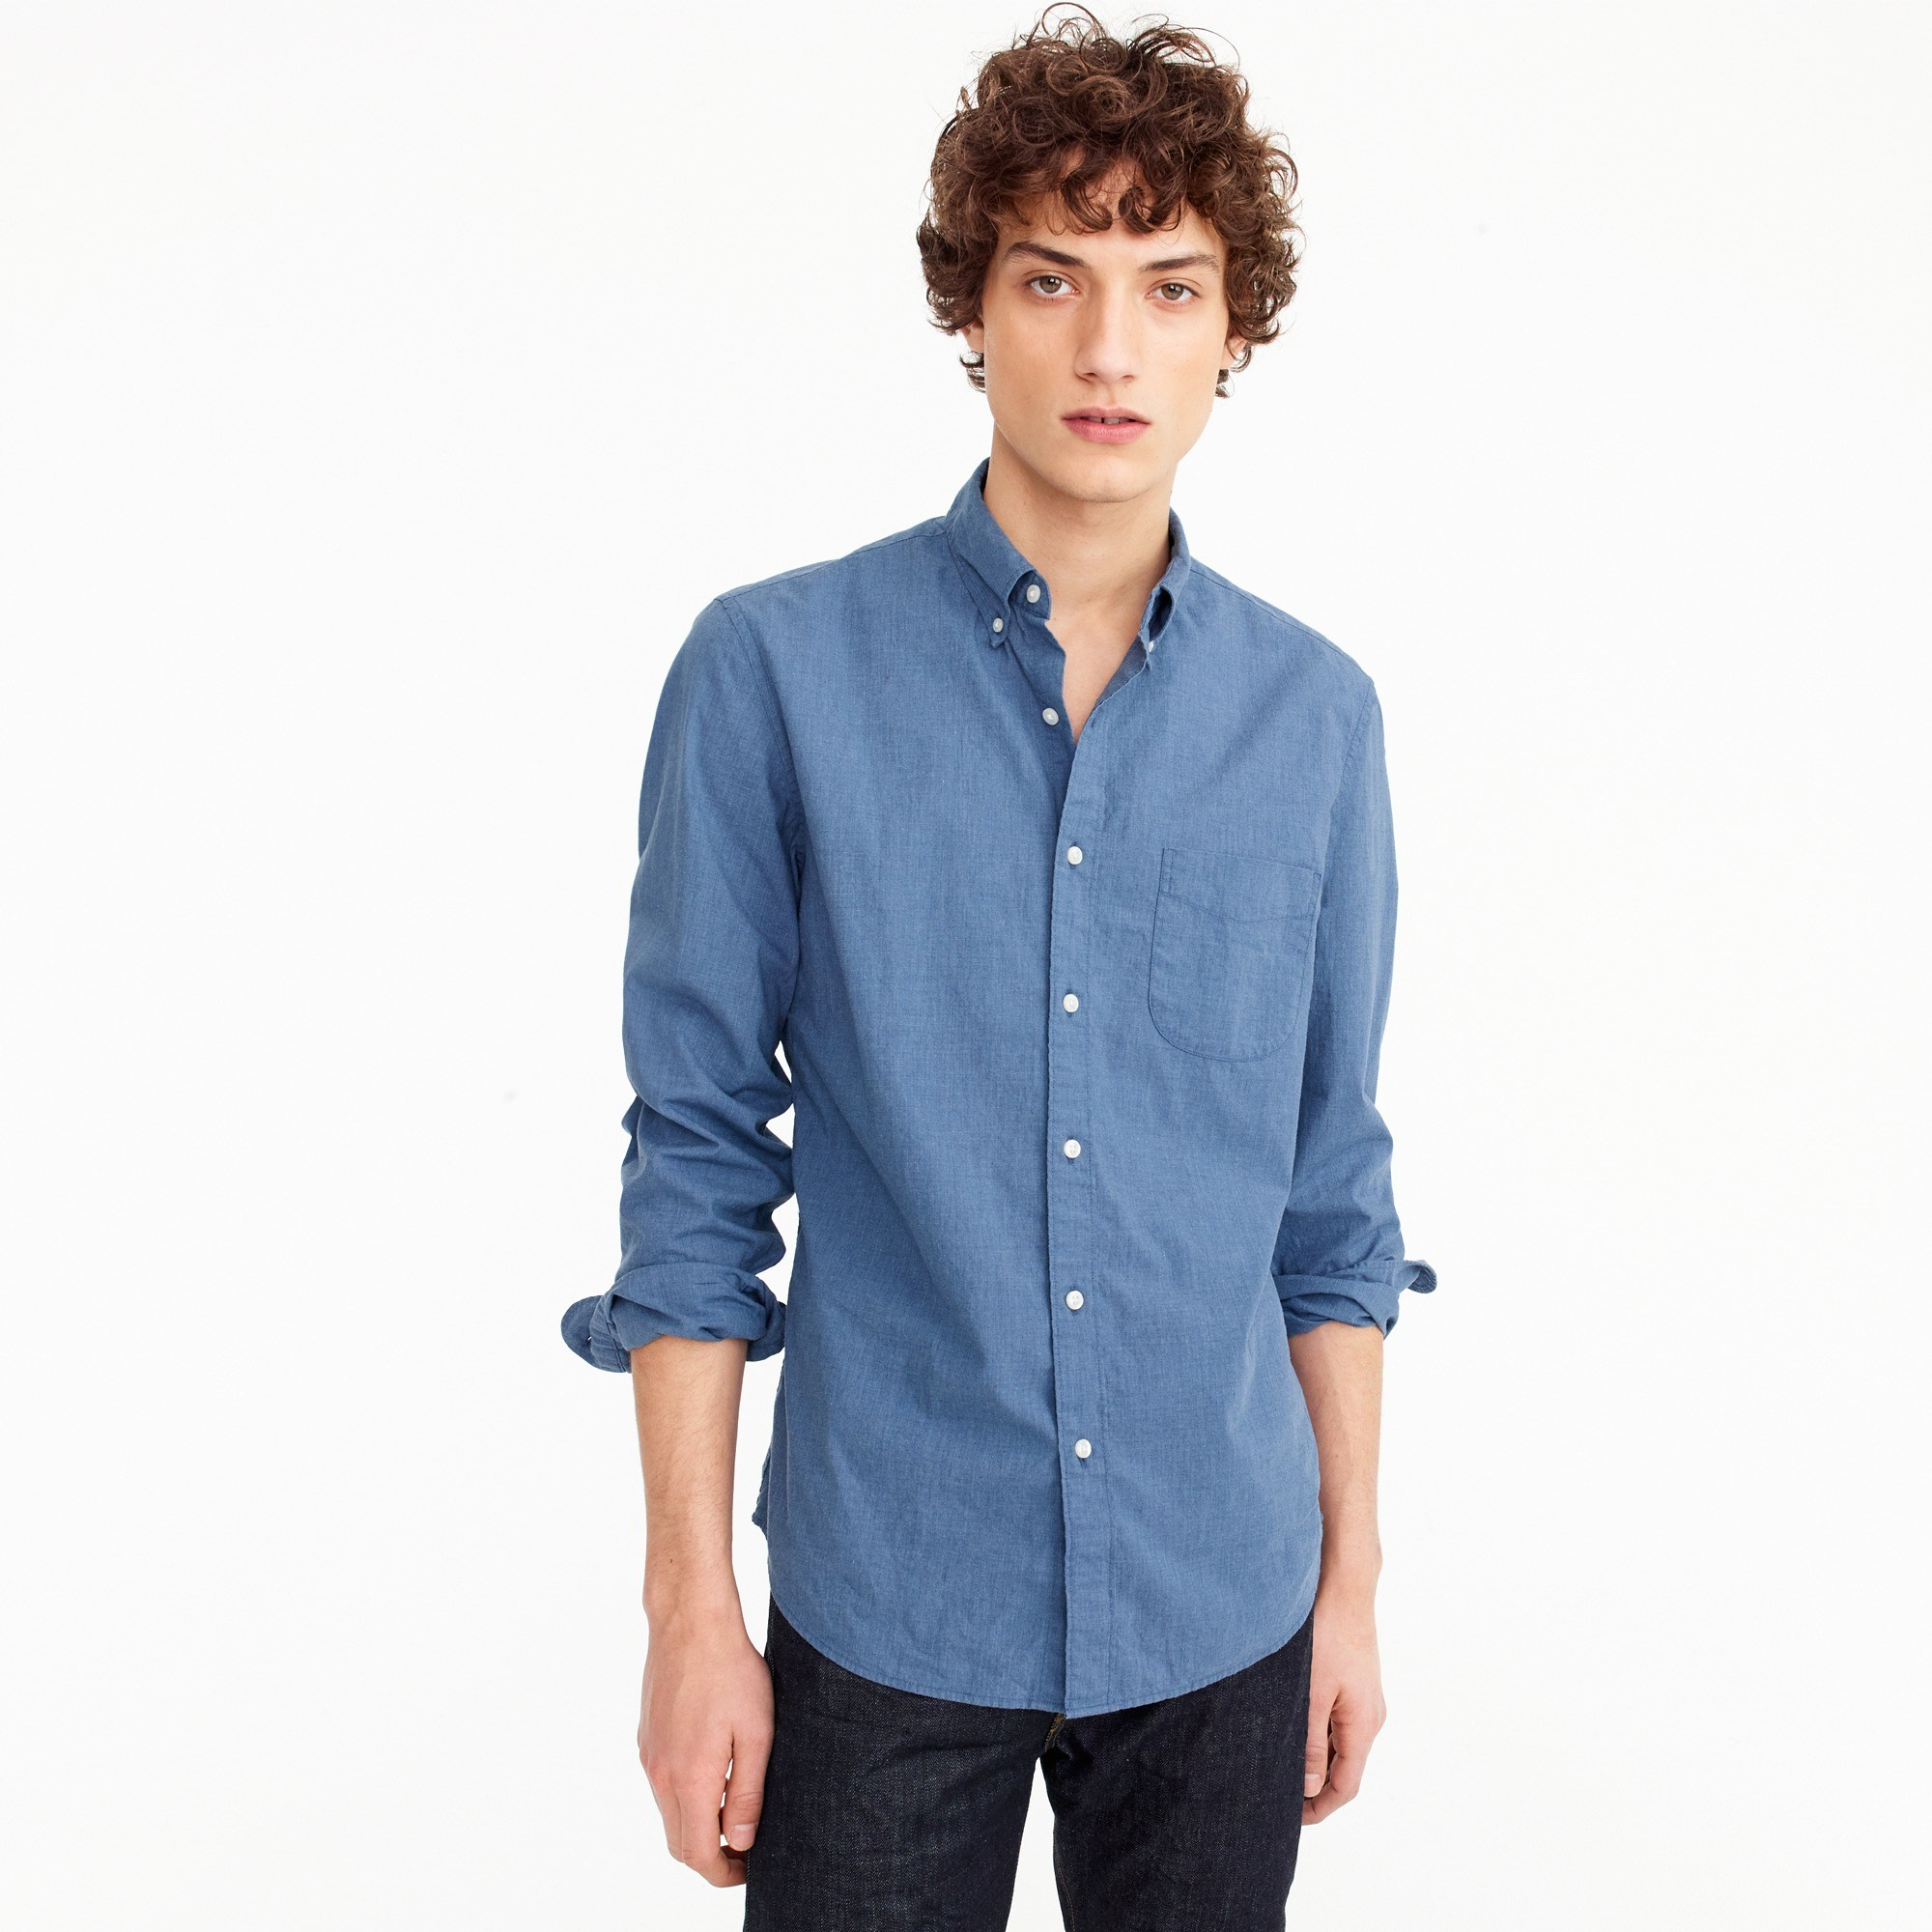 Stretch shirt in blue heather poplin - Men's Shirts | J.Crew